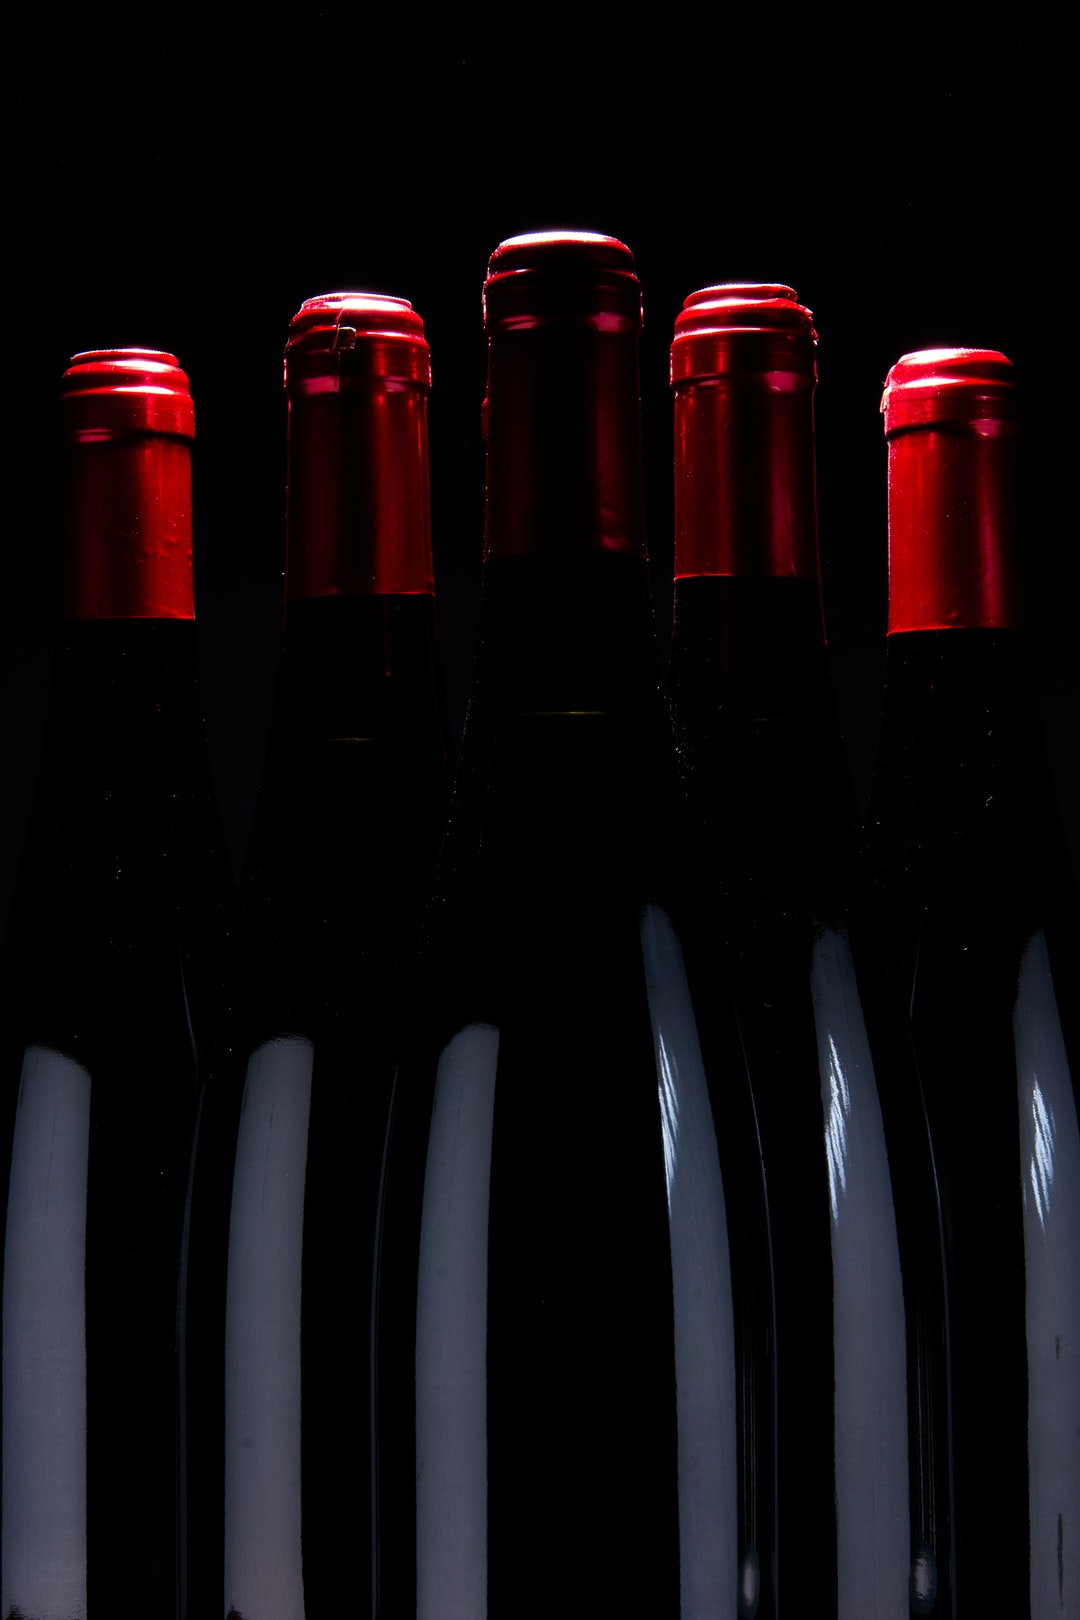 WINE INVESTMENT: ALL YOU NEED TO KNOW ABOUT INVESTING IN FINE WINE